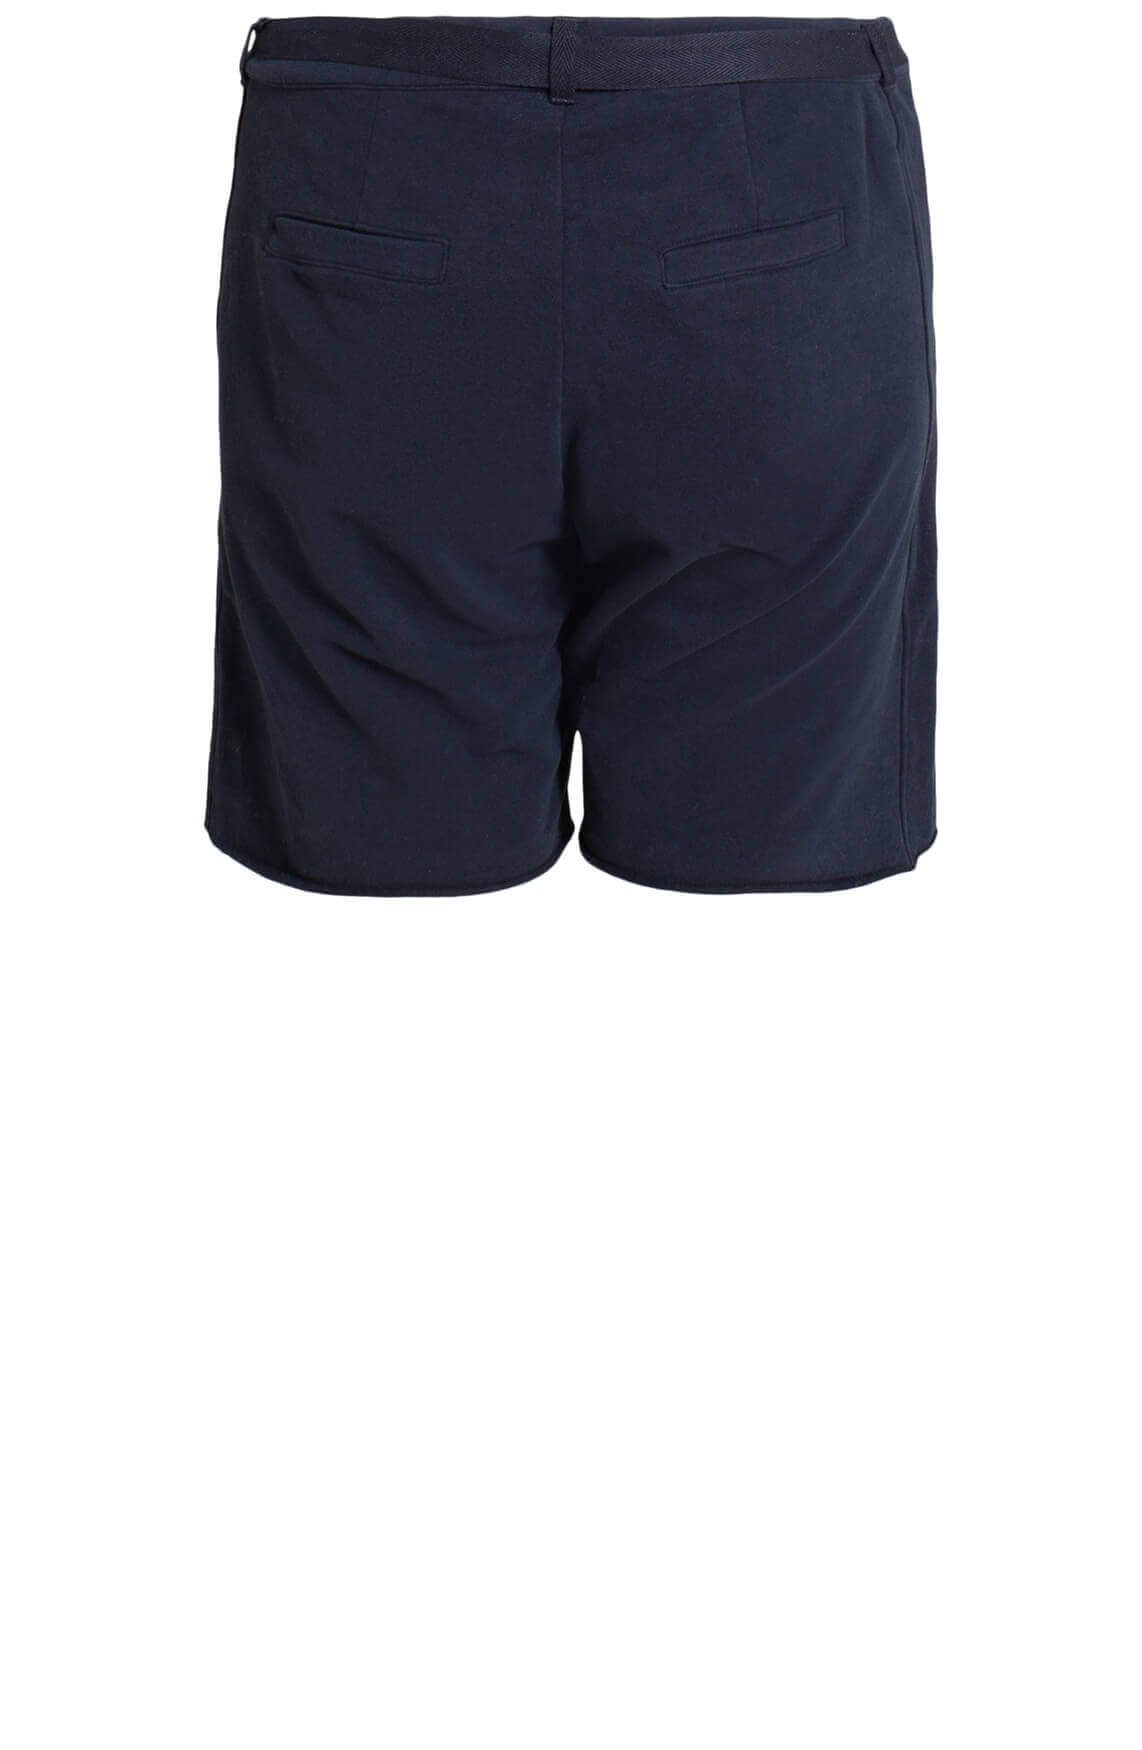 Penn & Ink Dames Sweatshort zwart